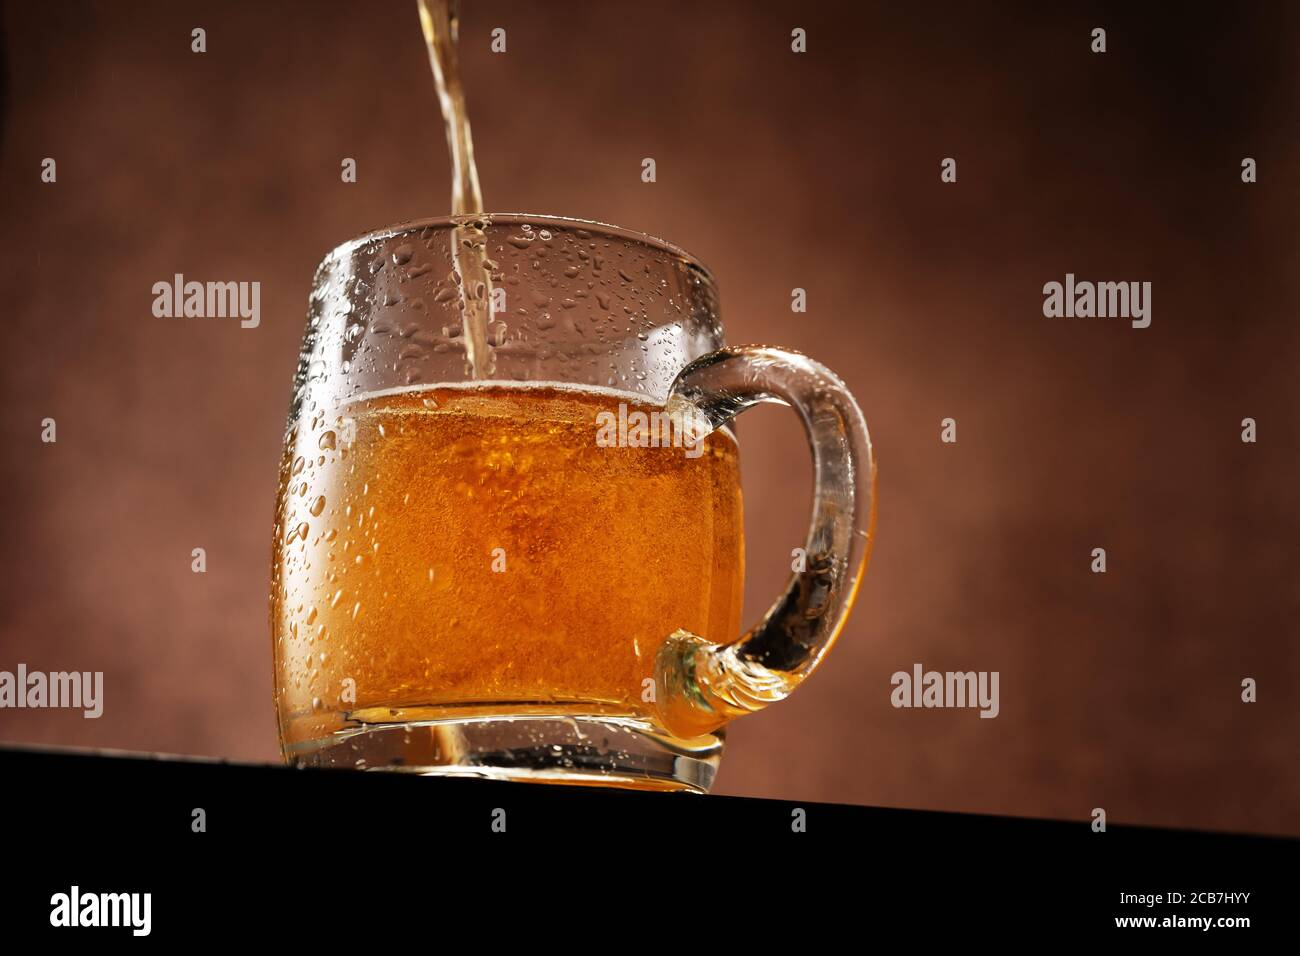 Light beer beeing poured into a mug standing against brown background below the eye line Stock Photo